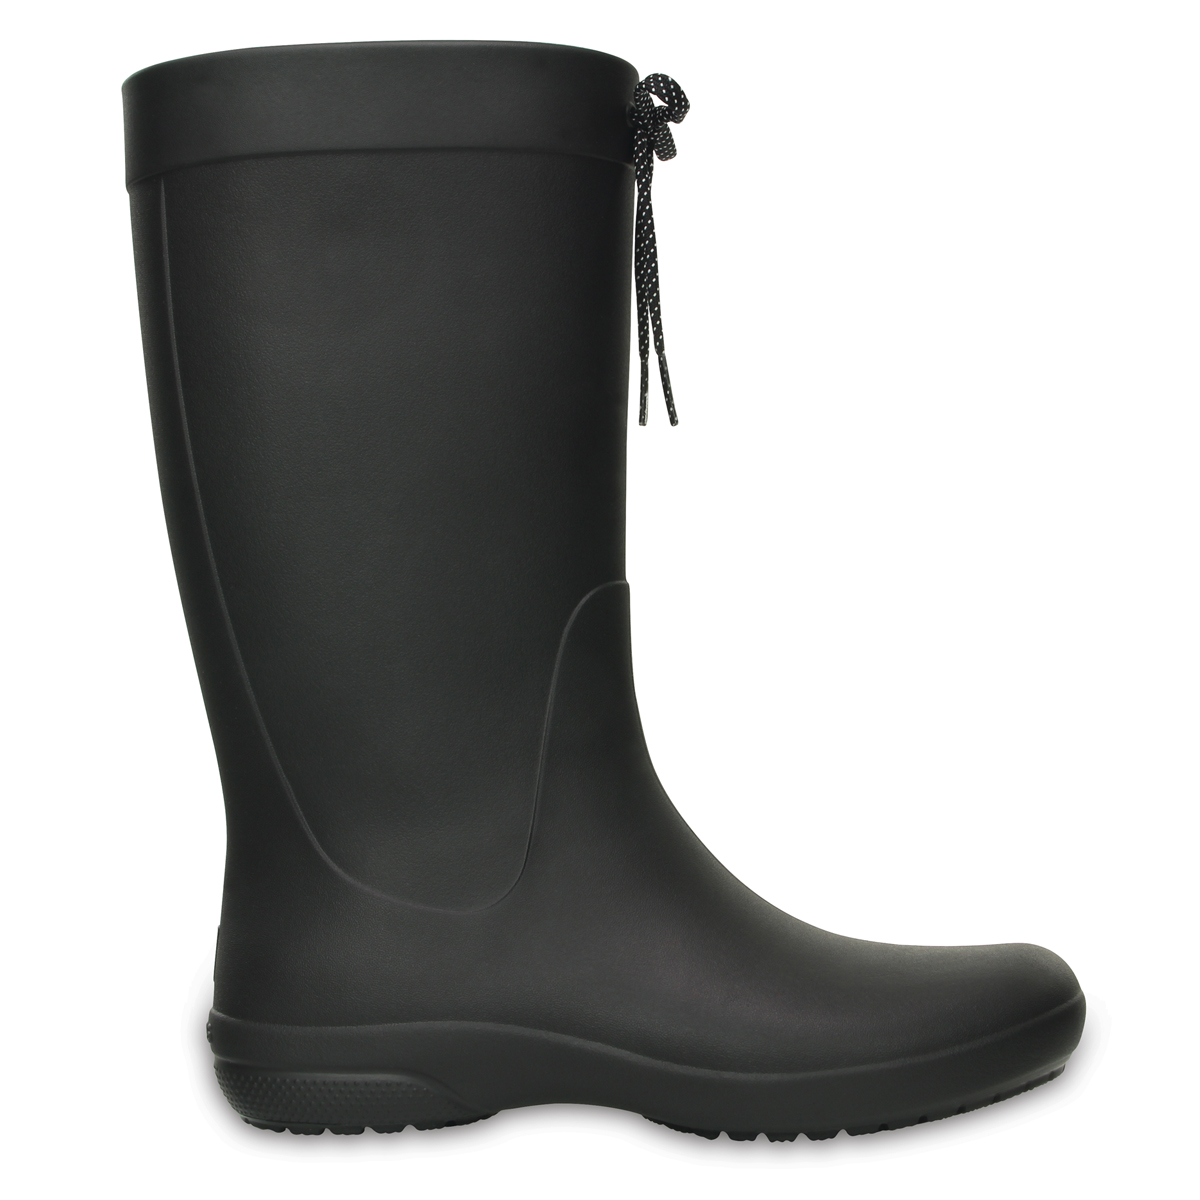 Crocs Freesail Rain Boot - Siyah